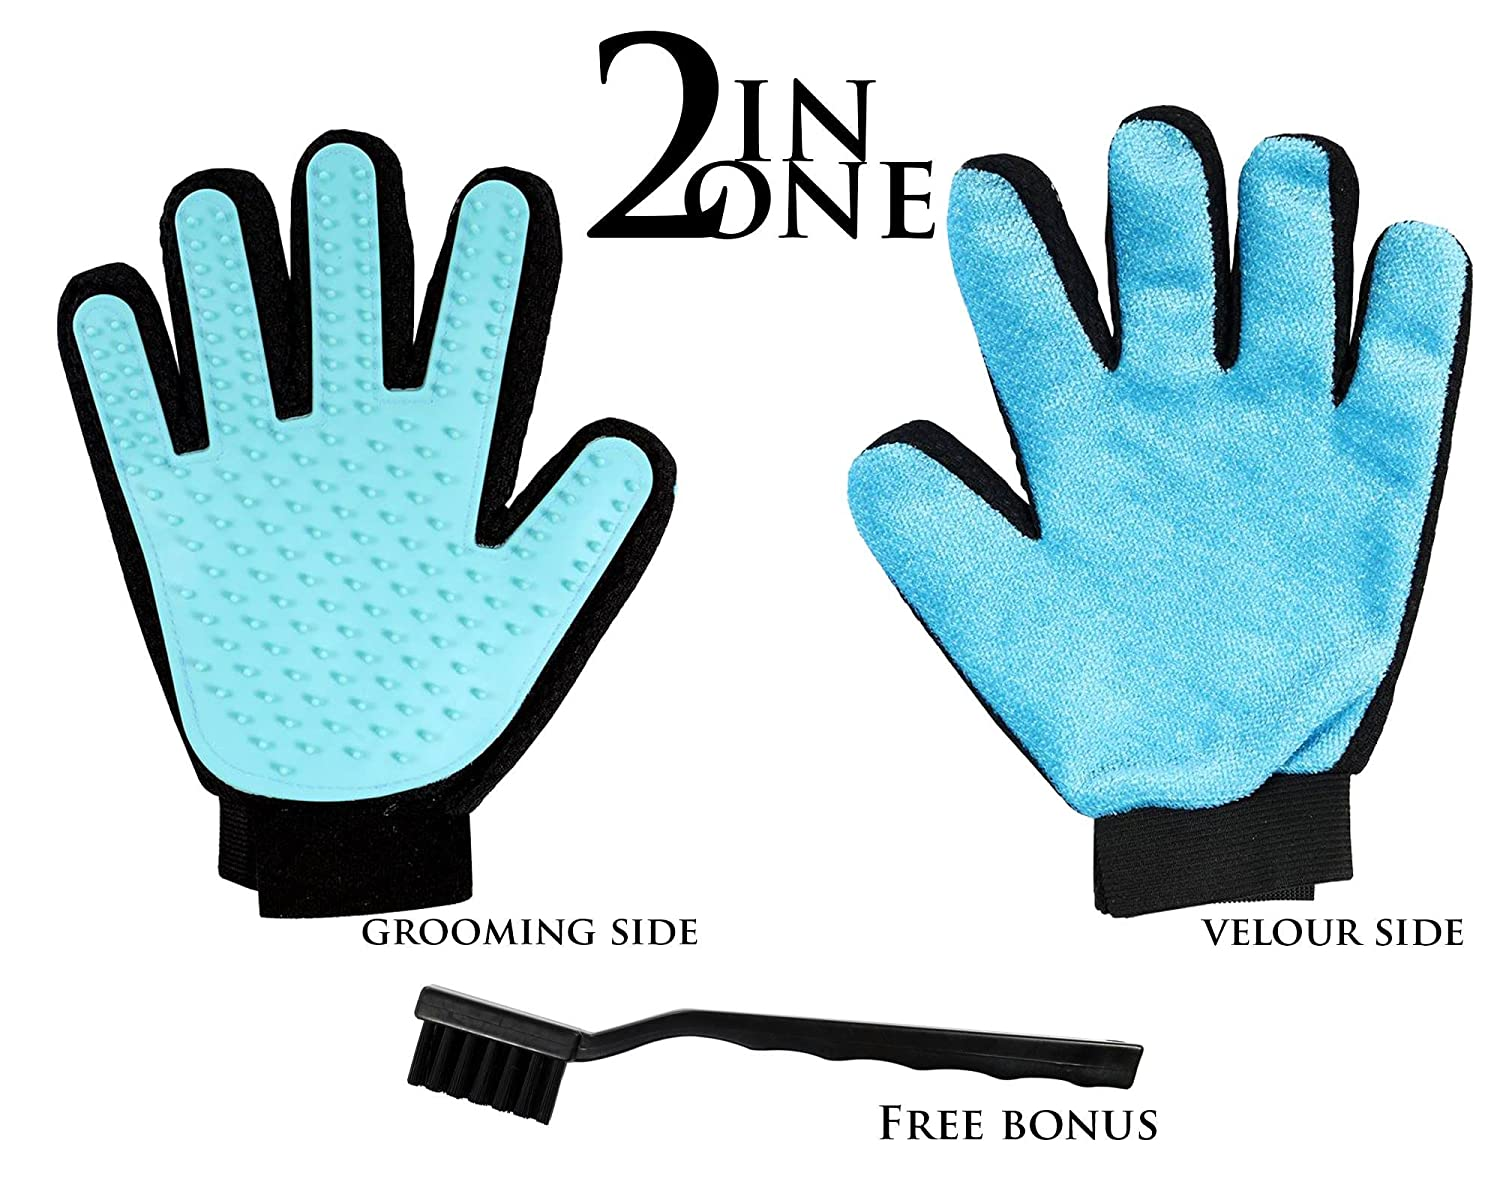 2 in 1 Pet Grooming Glove for Dogs Cats, Hair Comb, Grooming Tool, Deshedding Brush for Short Long Hair, Bathing Glove for Massage + Furniture Fur Remover Mitt with Cleaning Brush